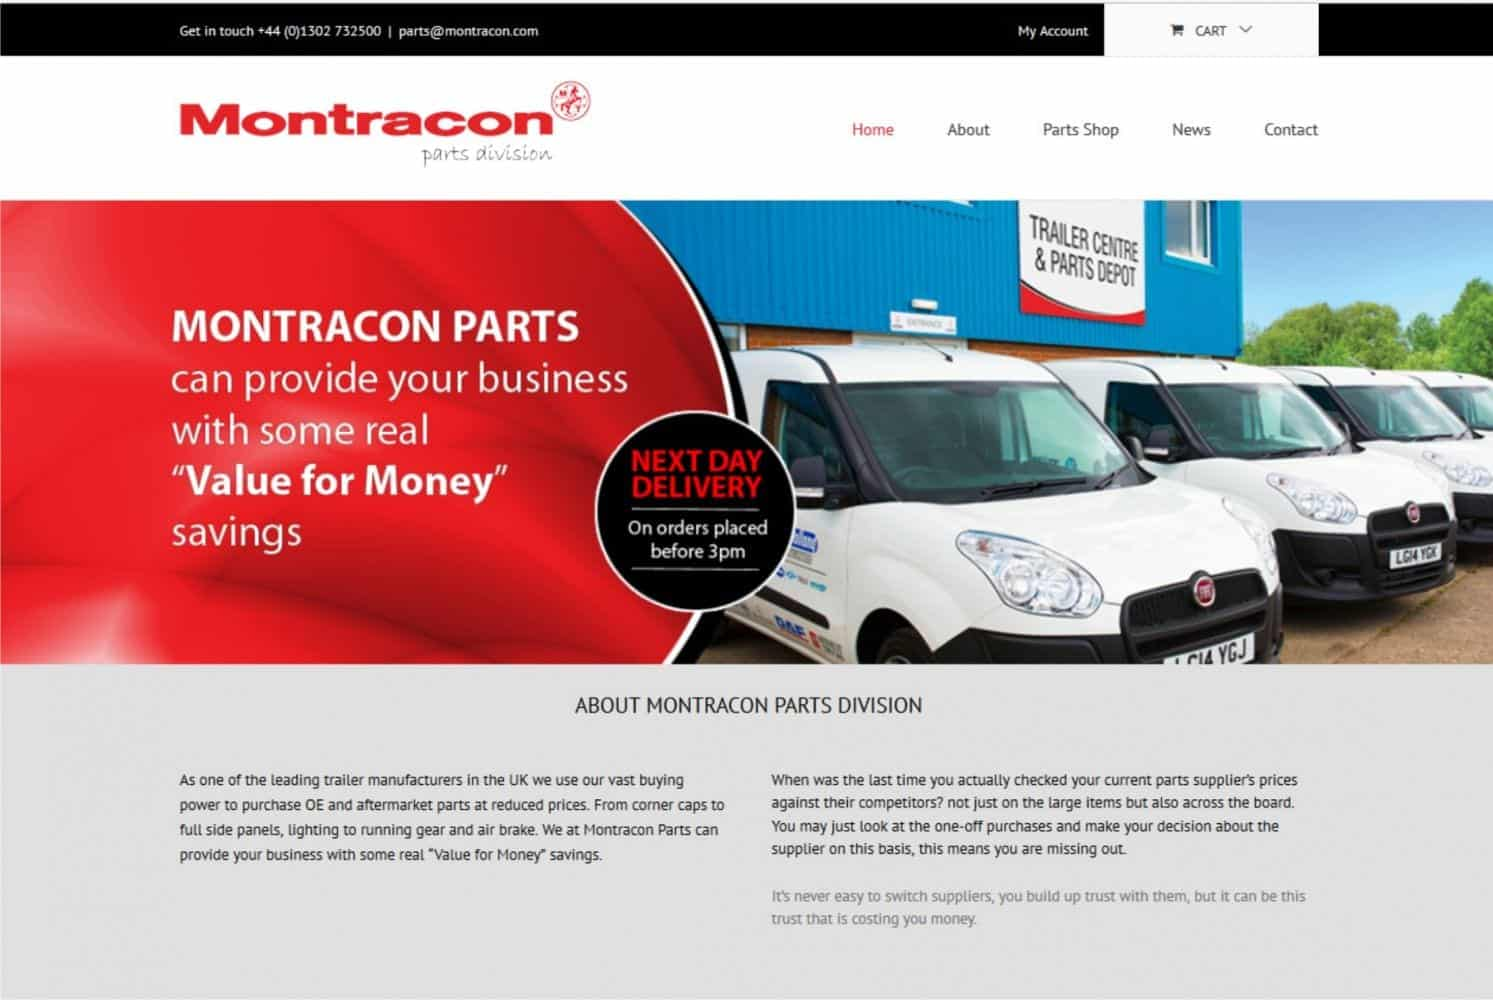 Montracon parts website